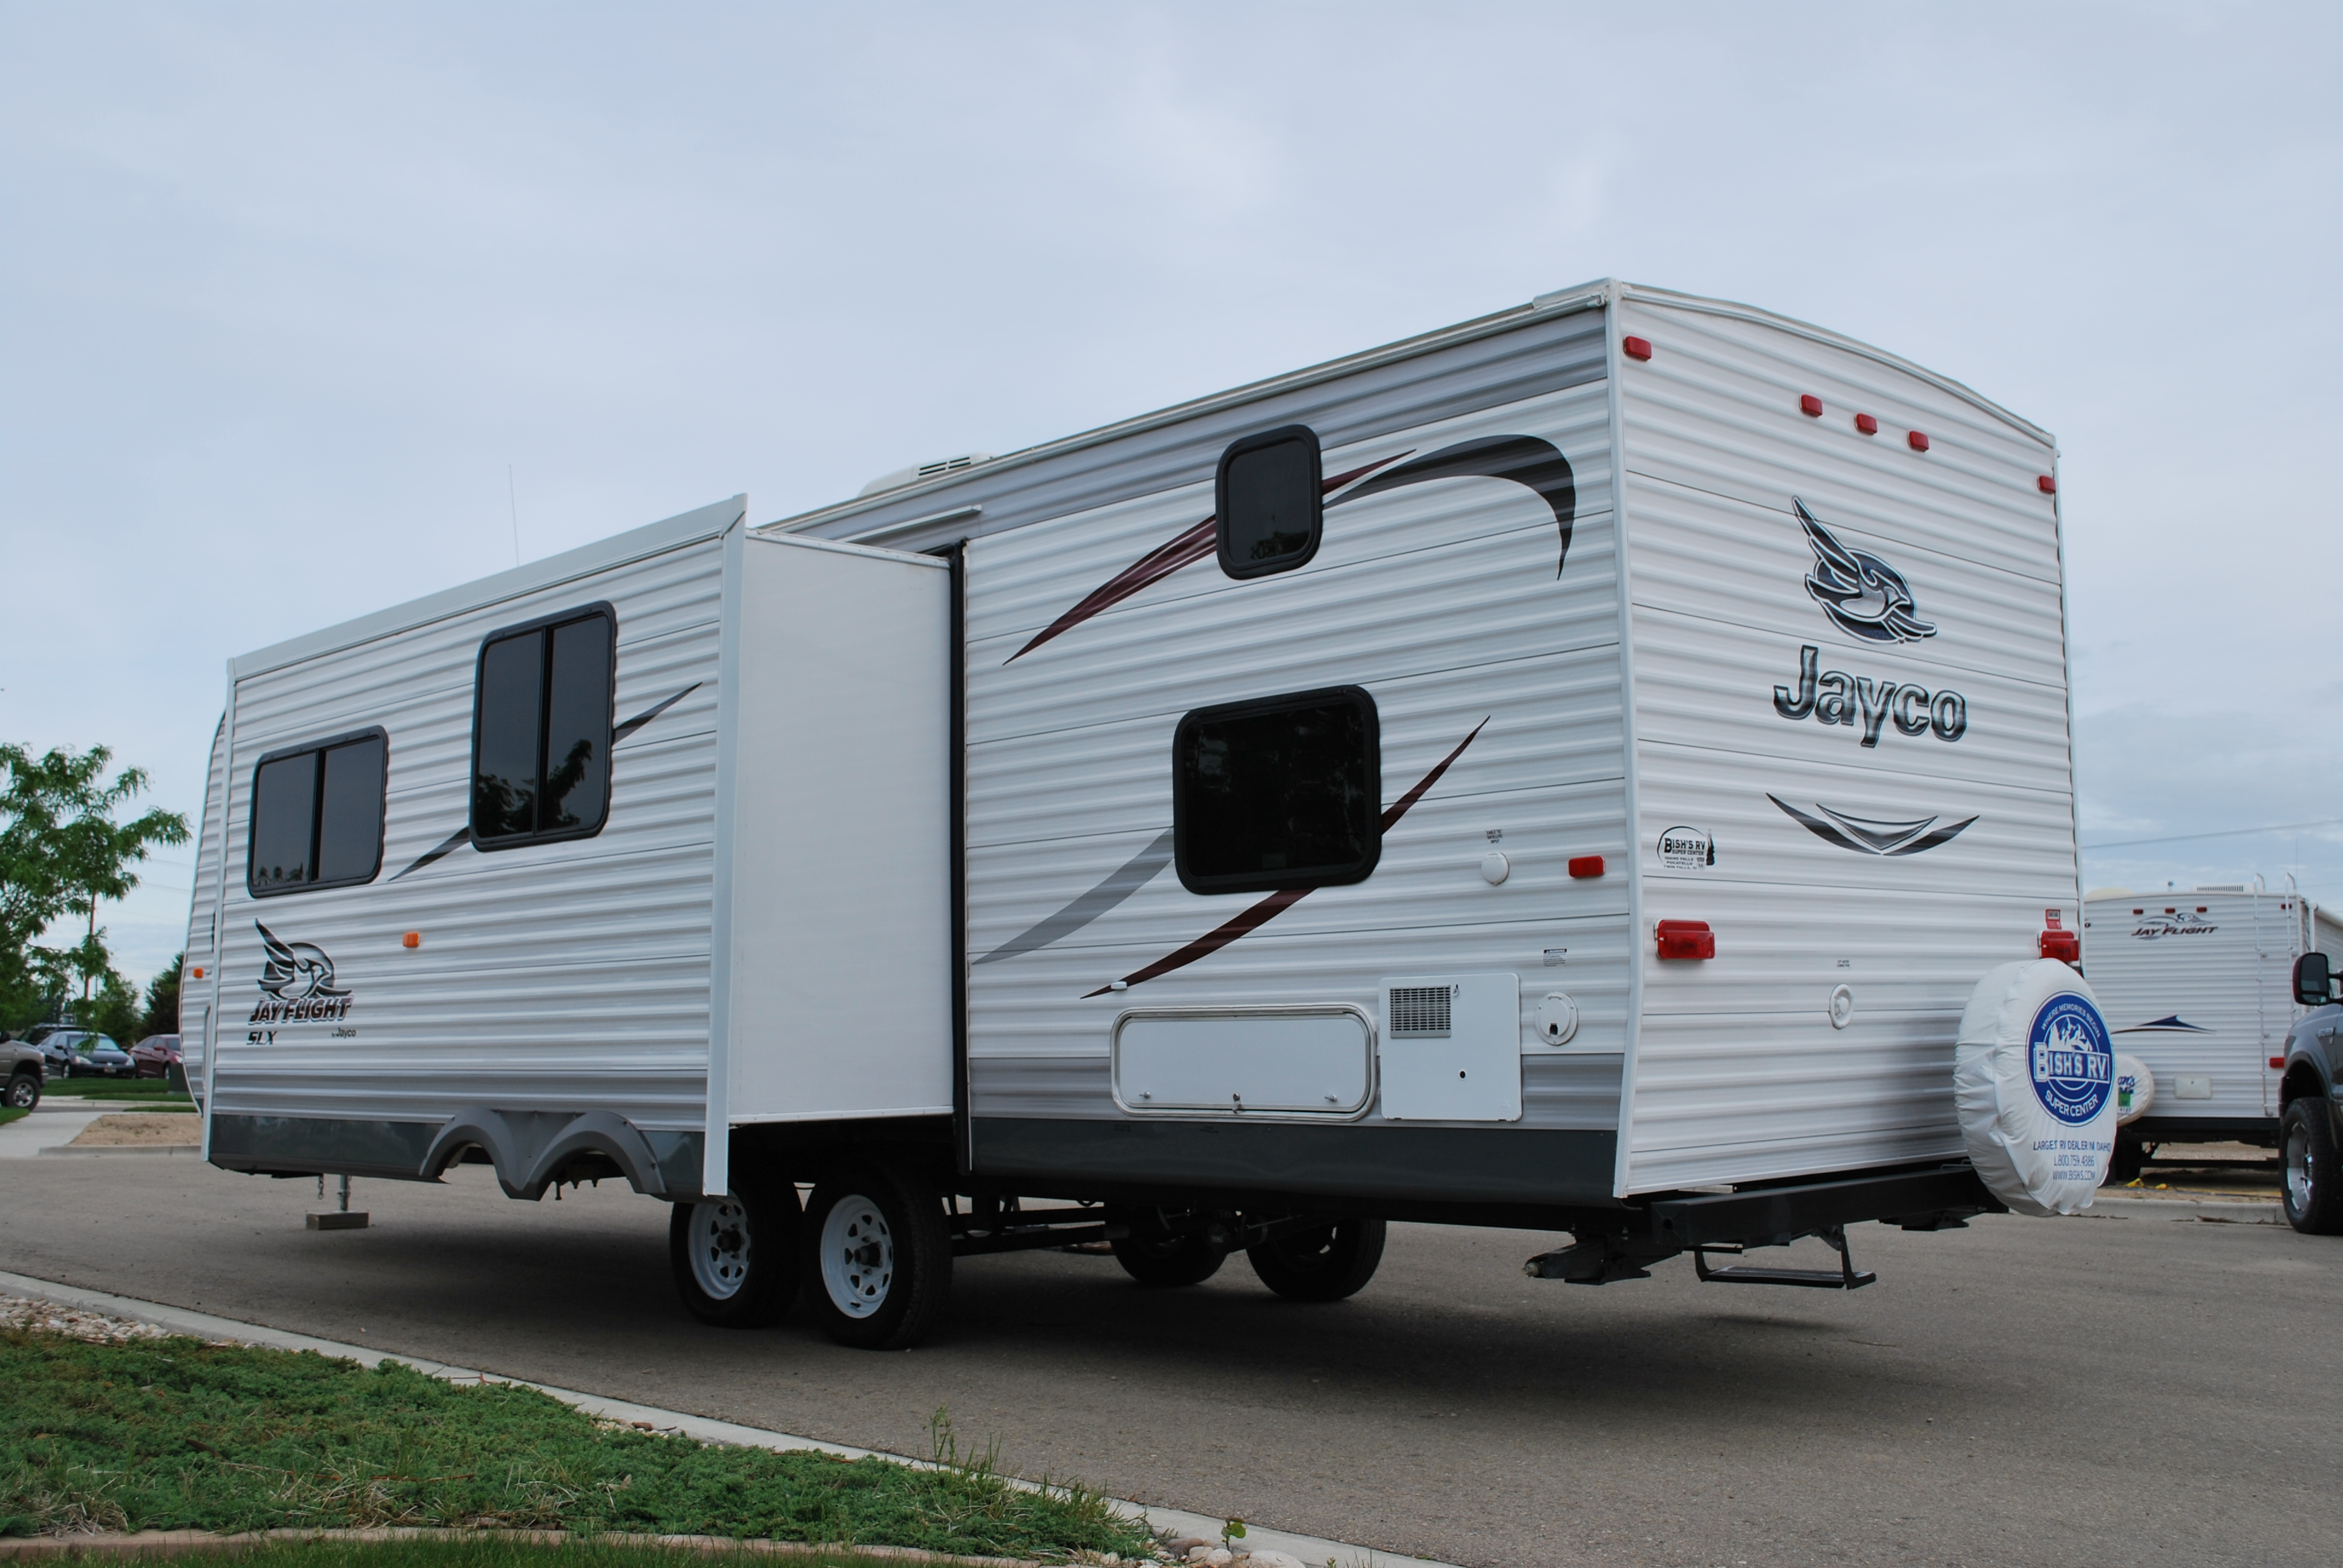 Amazing MIDDLEBURY, IN  Jayco Inc Has Upgraded Its 2005 Line Of Eagle Travel Trailers And Fifth Wheels By Focusing On Eye Appeal And Offering Previously Optional Features As Standard Equipment Customer Research Guided The Changes For The